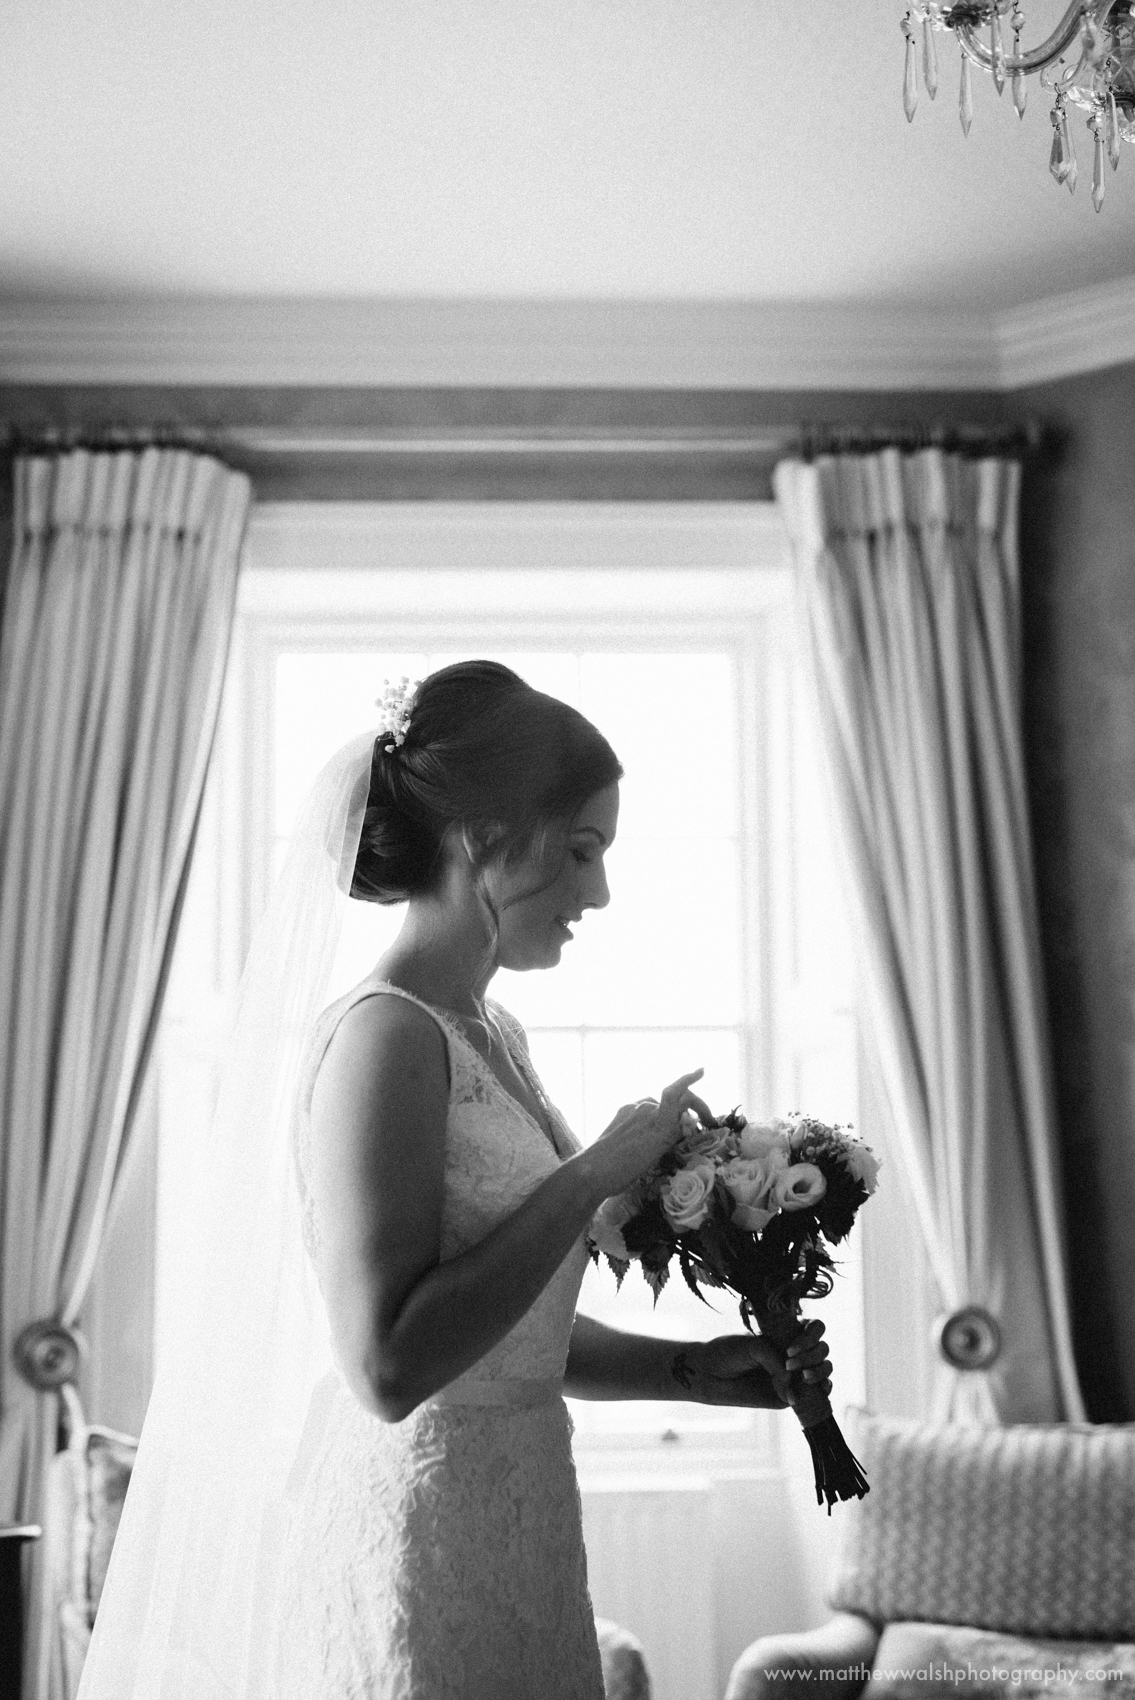 The bride checks the flowers in her bouquet